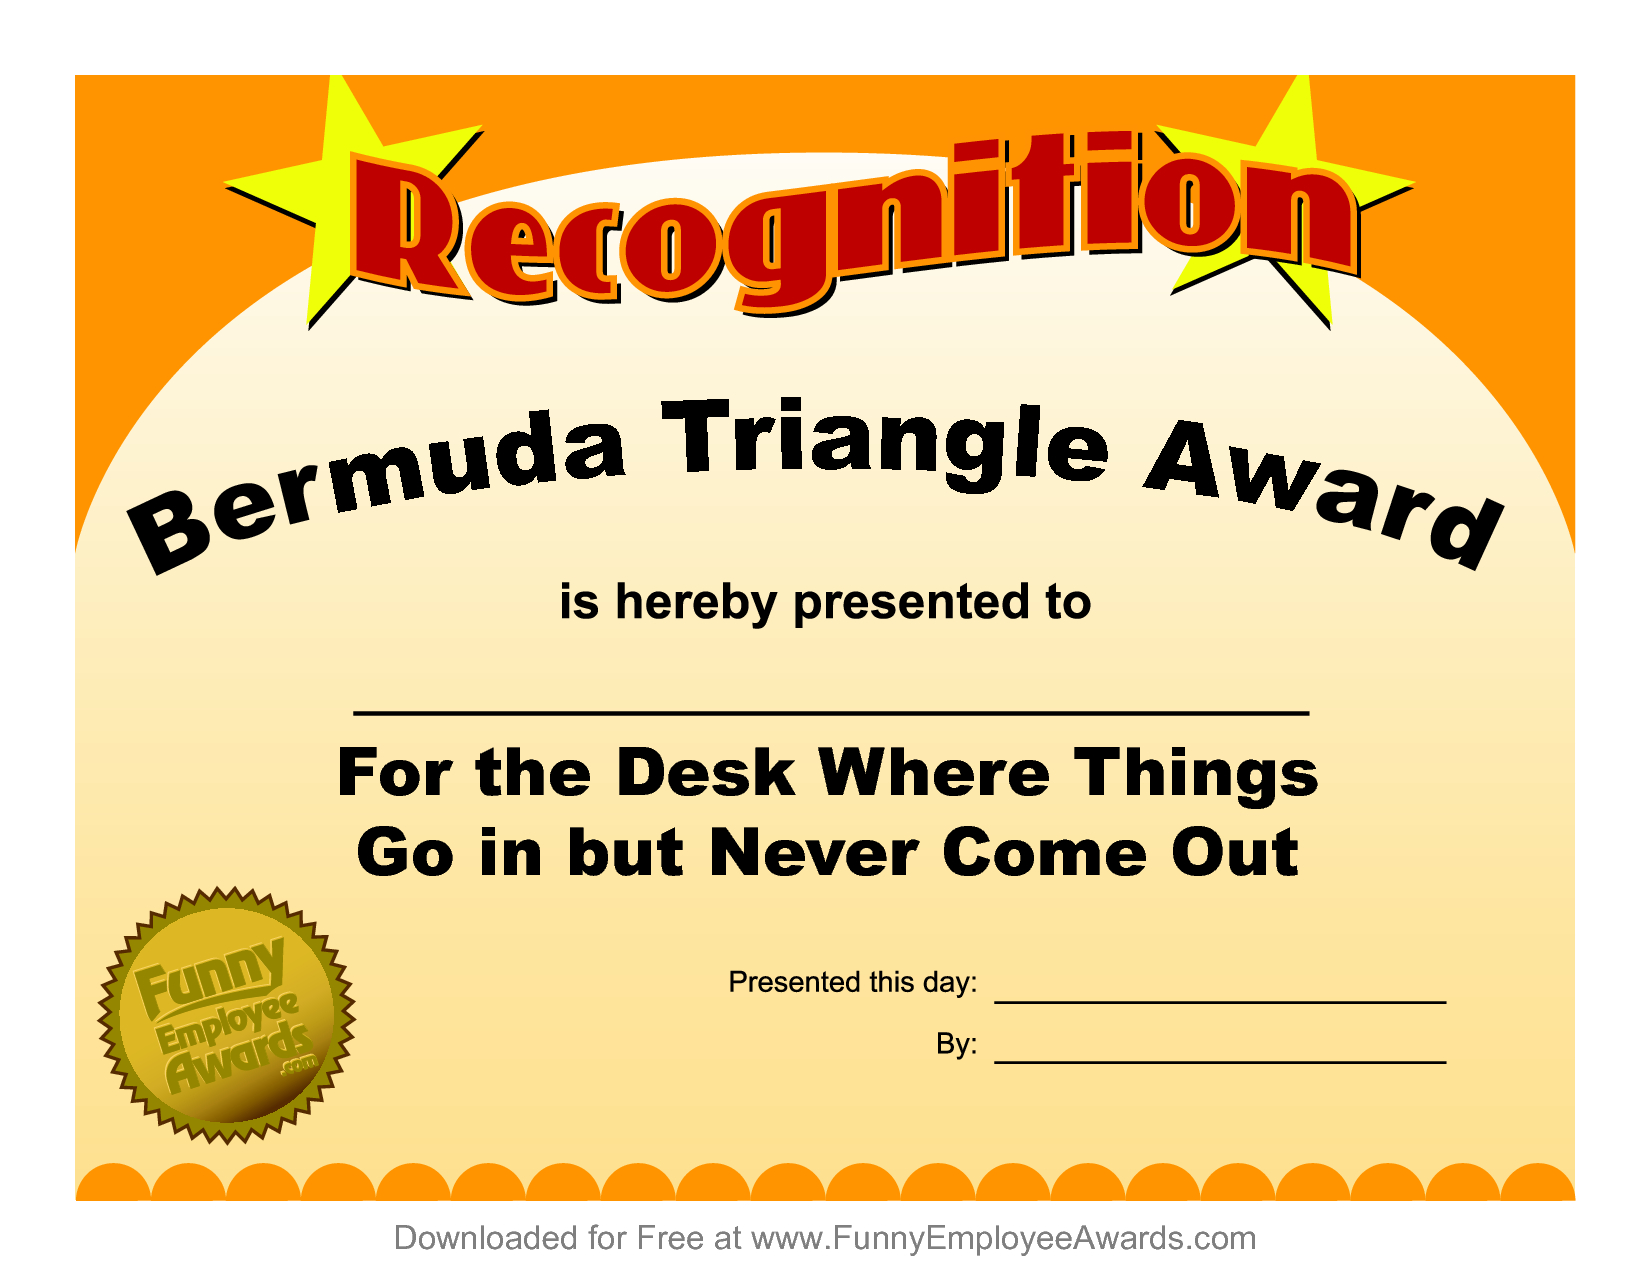 Funny Certificate Template ] - Funny Award Certificate Throughout Free Printable Funny Certificate Templates